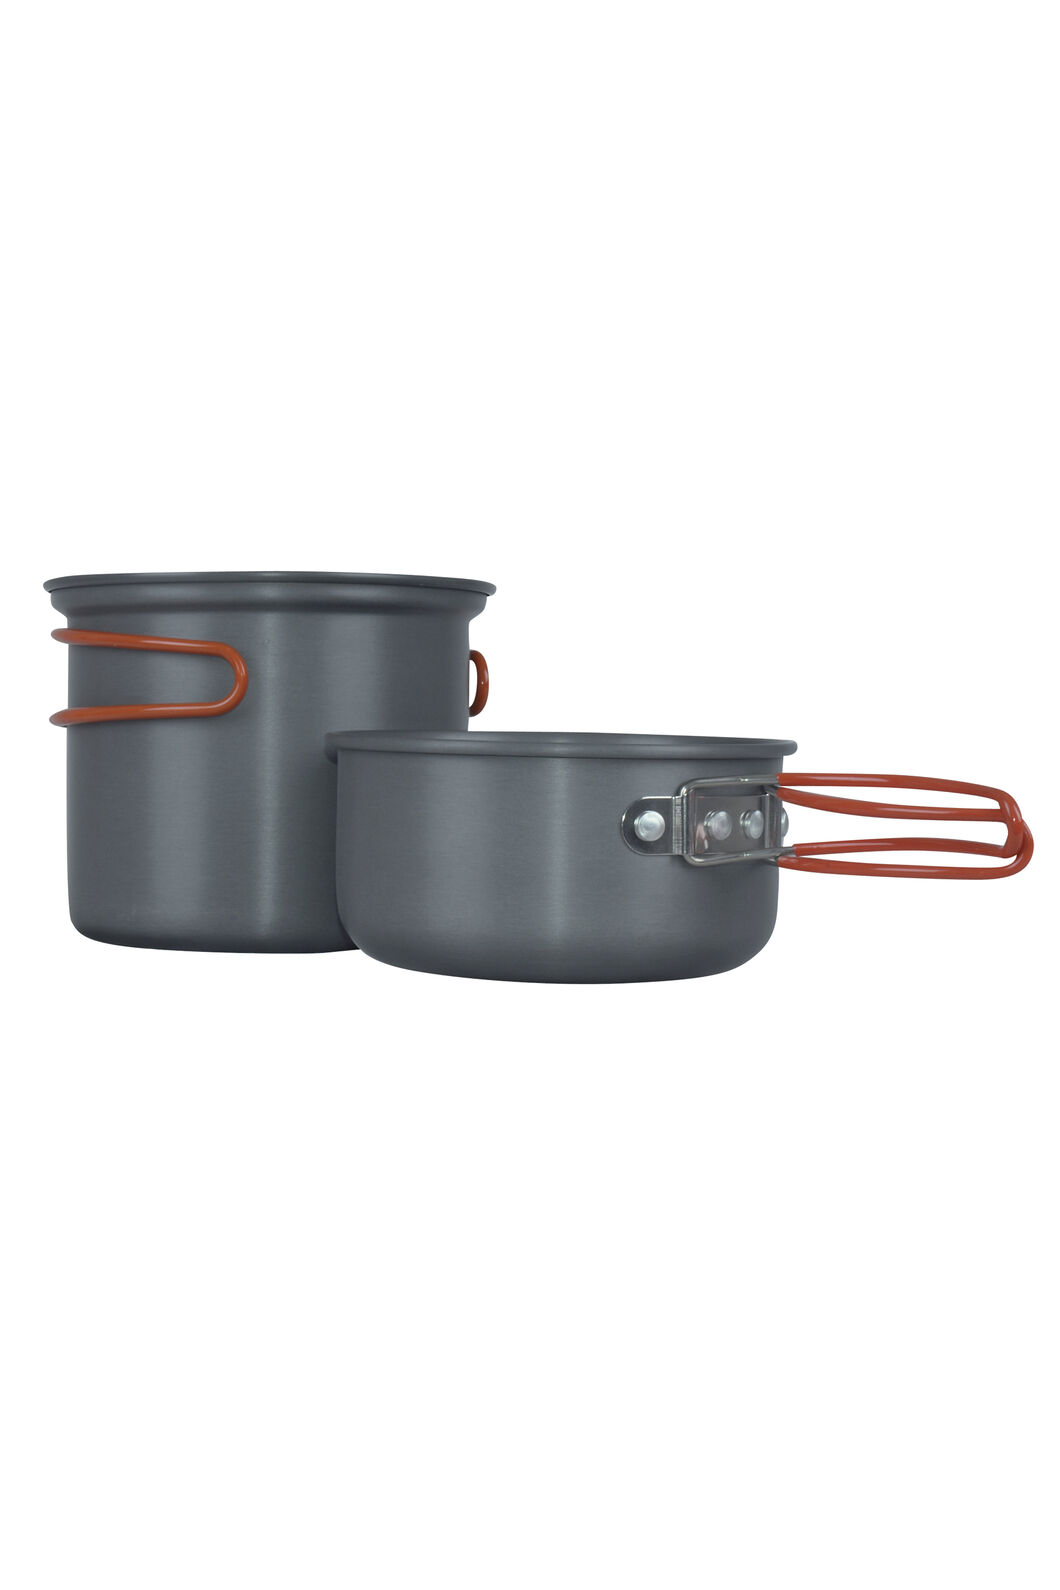 Macpac Solo Pot Set, None, hi-res